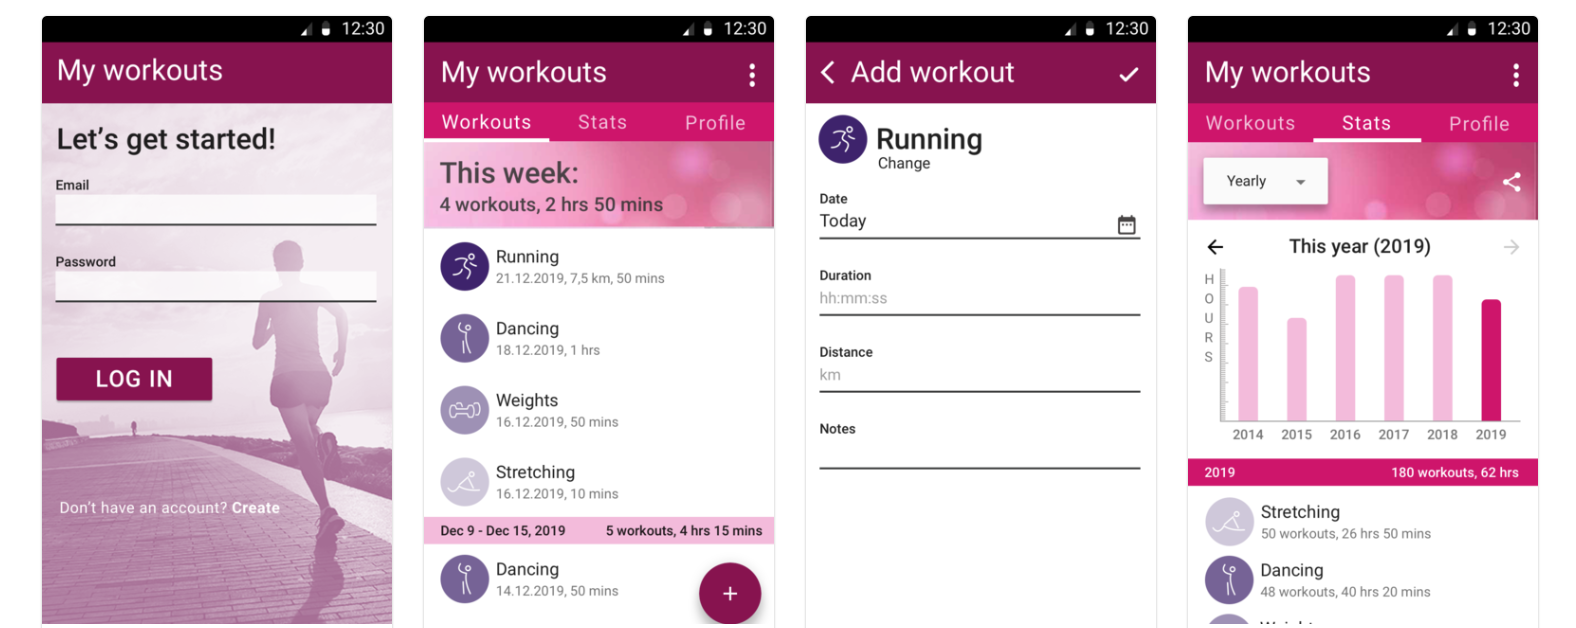 Realistic mockups of My Workouts app